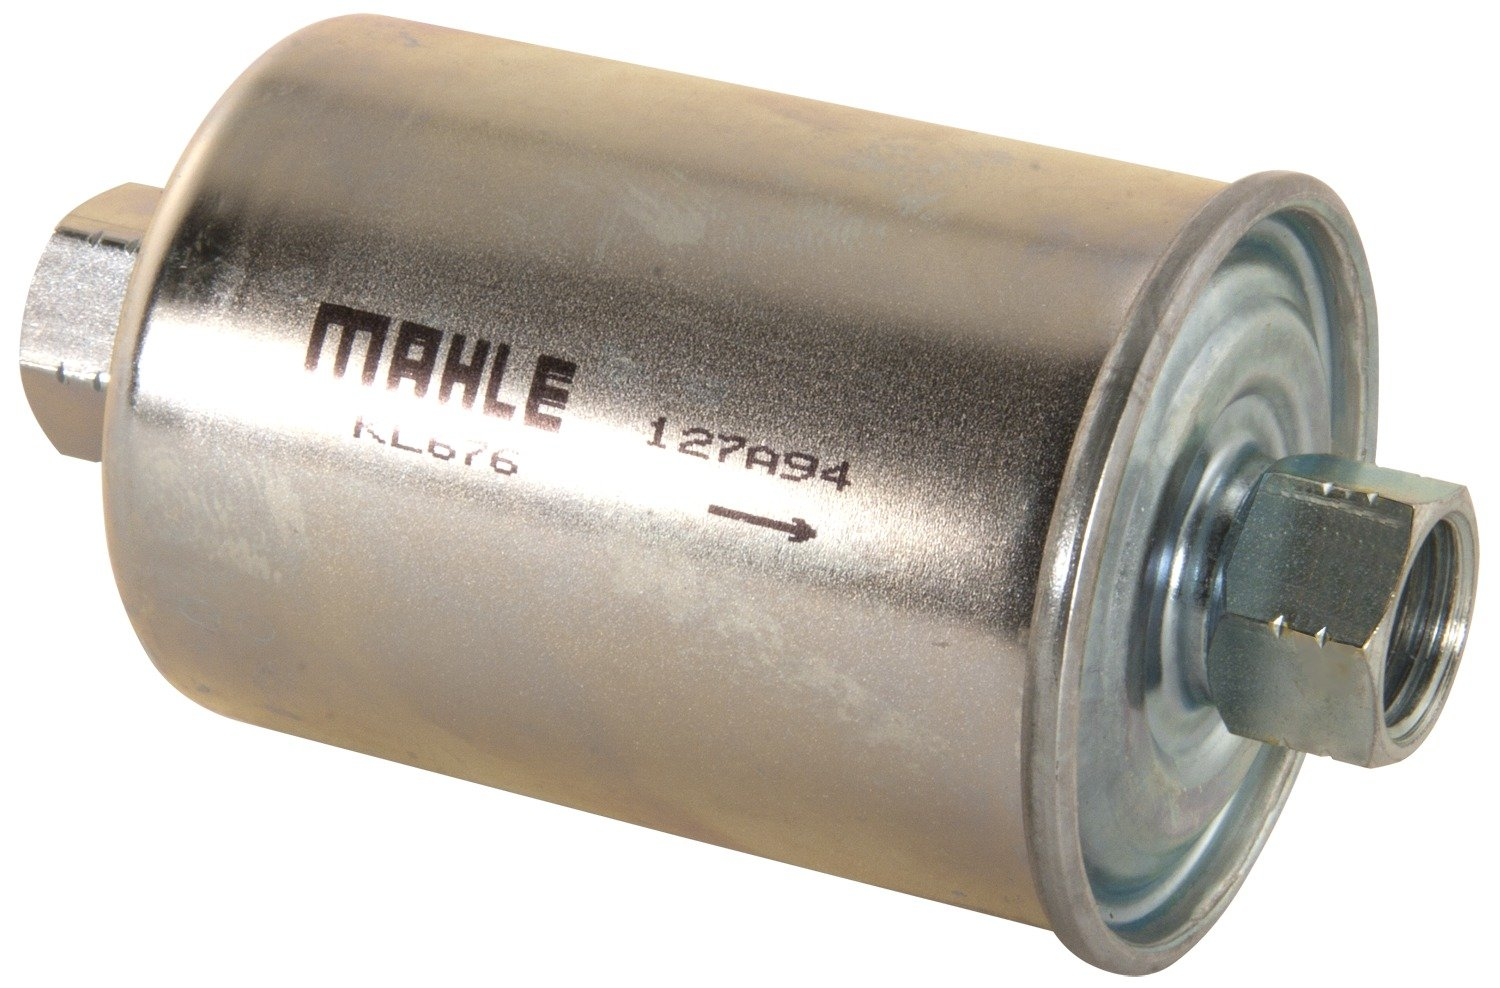 Mahle Original Kl 676 Fuel Filter Lovely 2009 Pt Cruiser